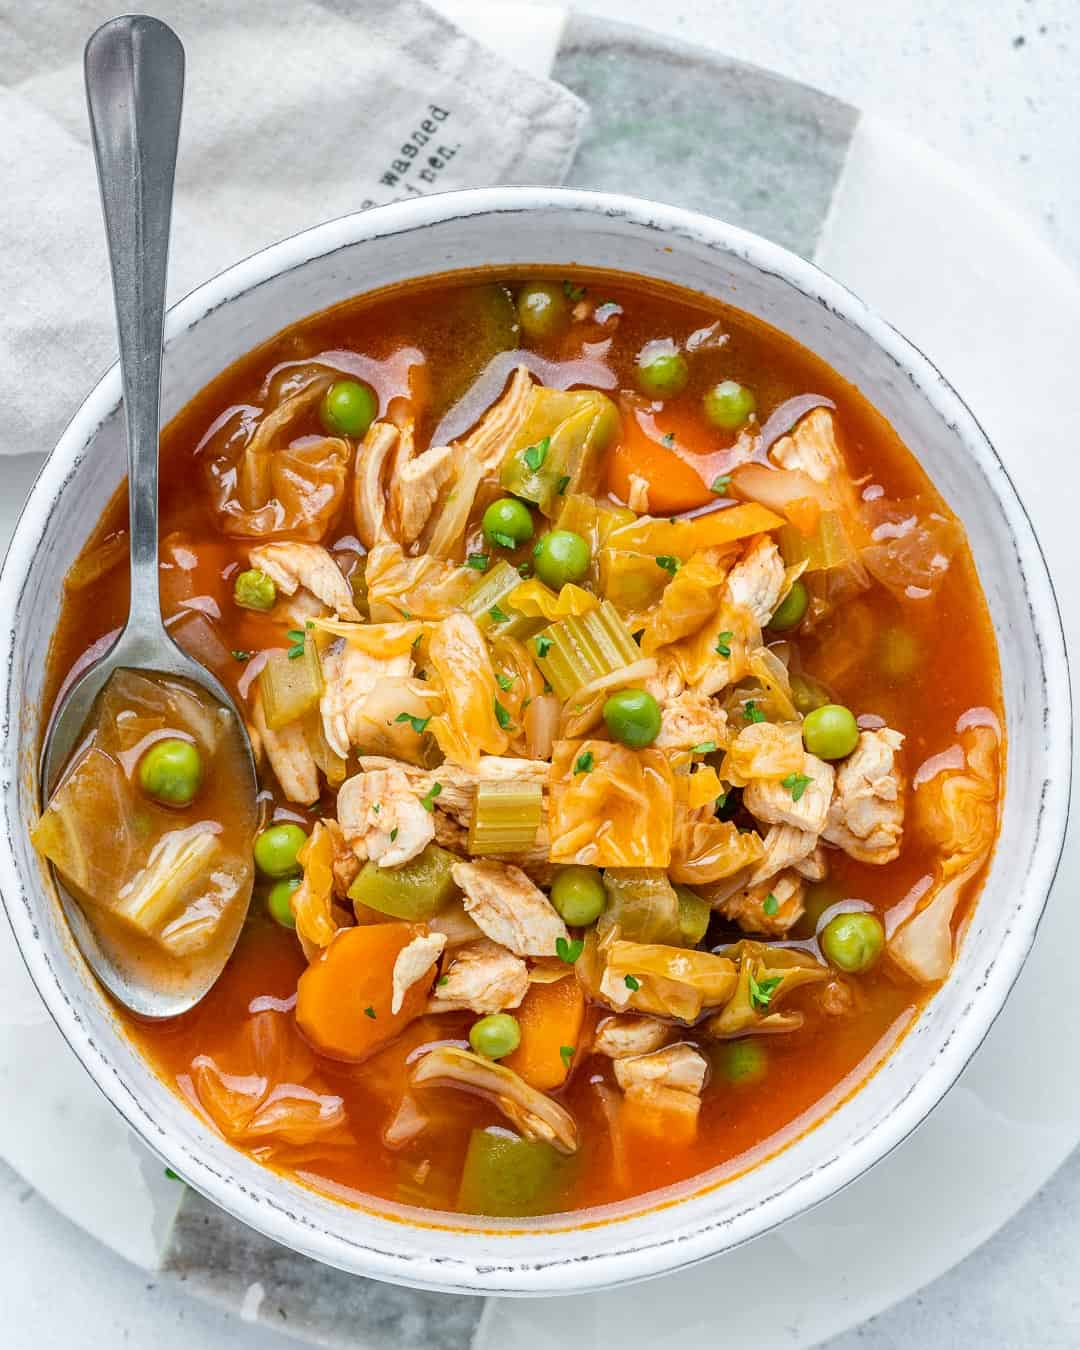 healthy chicken and veggie soup with spoon in bowl